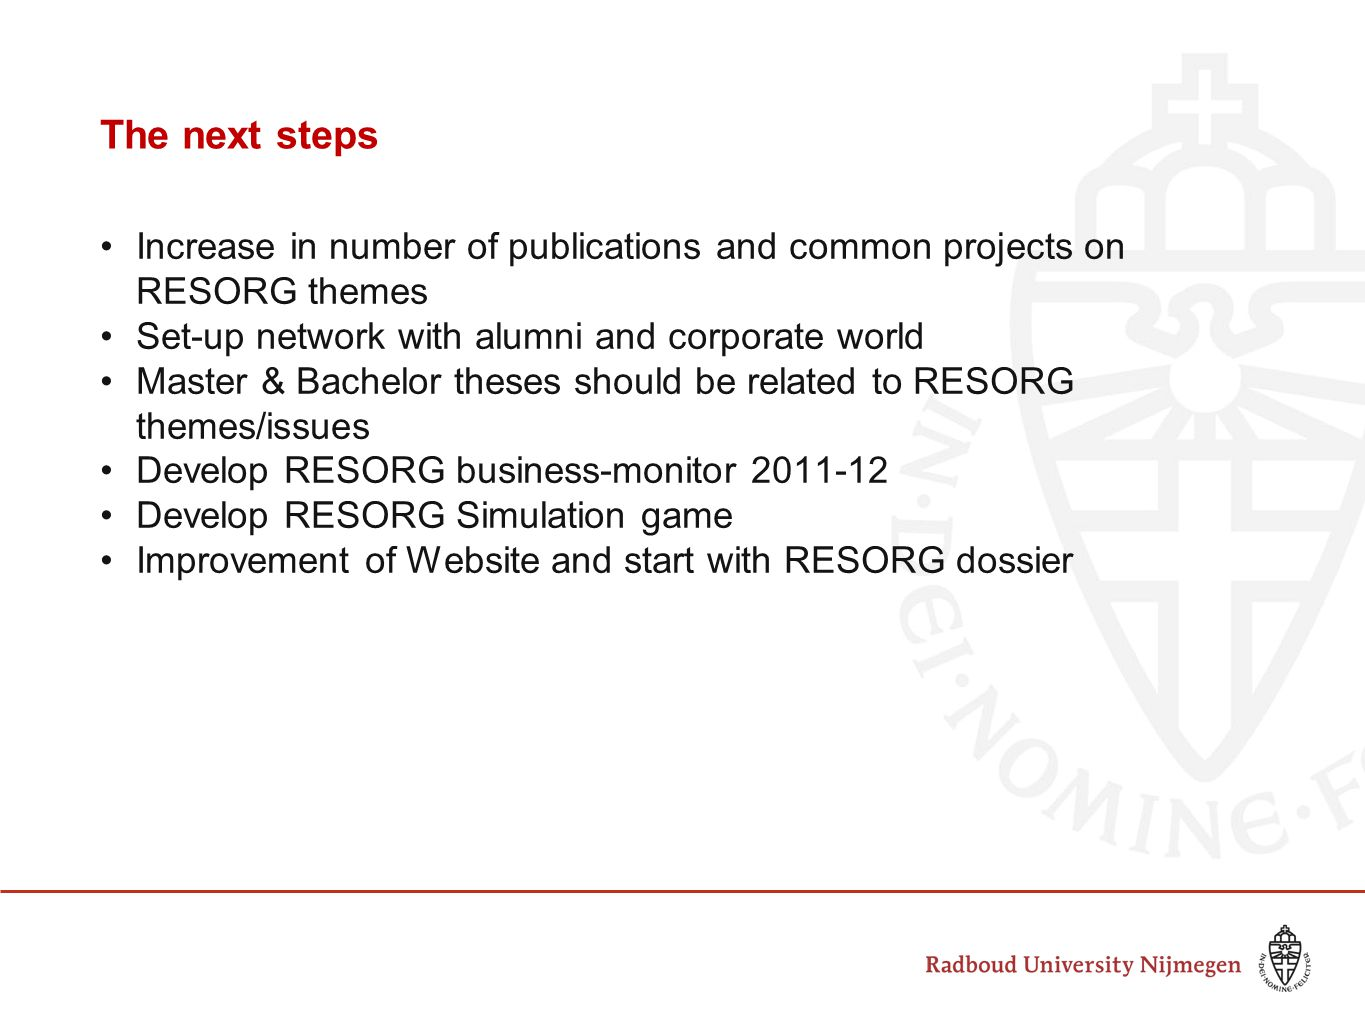 The next steps Increase in number of publications and common projects on RESORG themes Set-up network with alumni and corporate world Master & Bachelor theses should be related to RESORG themes/issues Develop RESORG business-monitor 2011-12 Develop RESORG Simulation game Improvement of Website and start with RESORG dossier